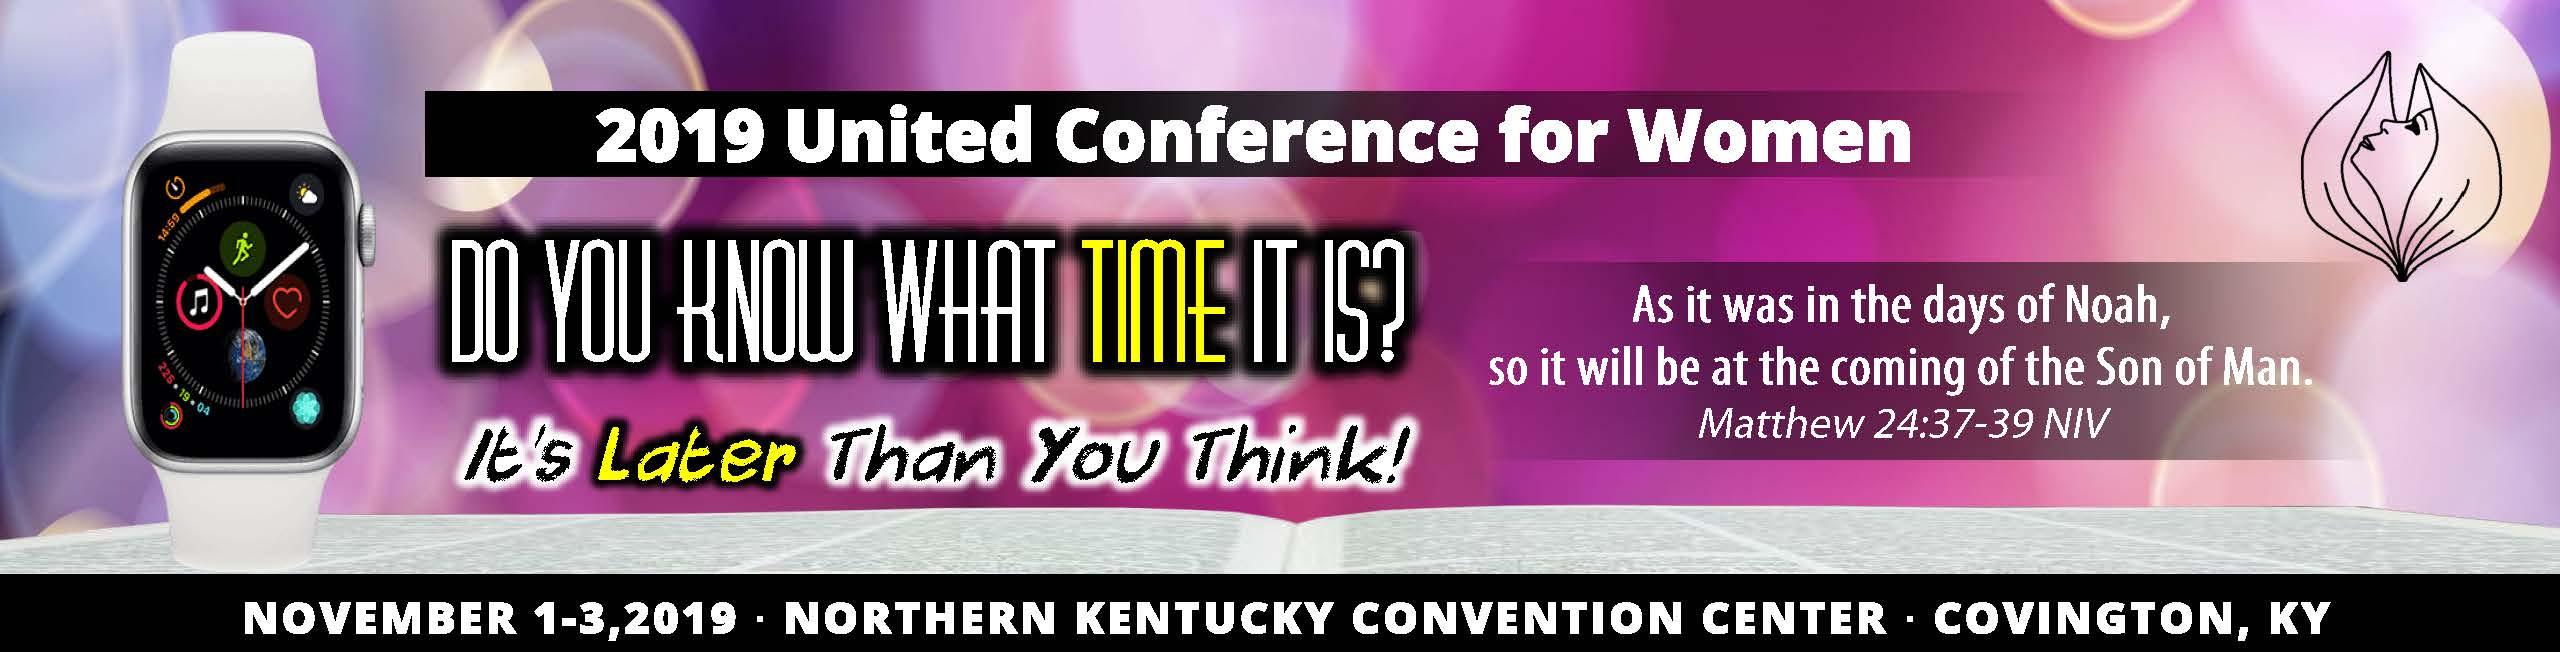 2019 United Conference for Women